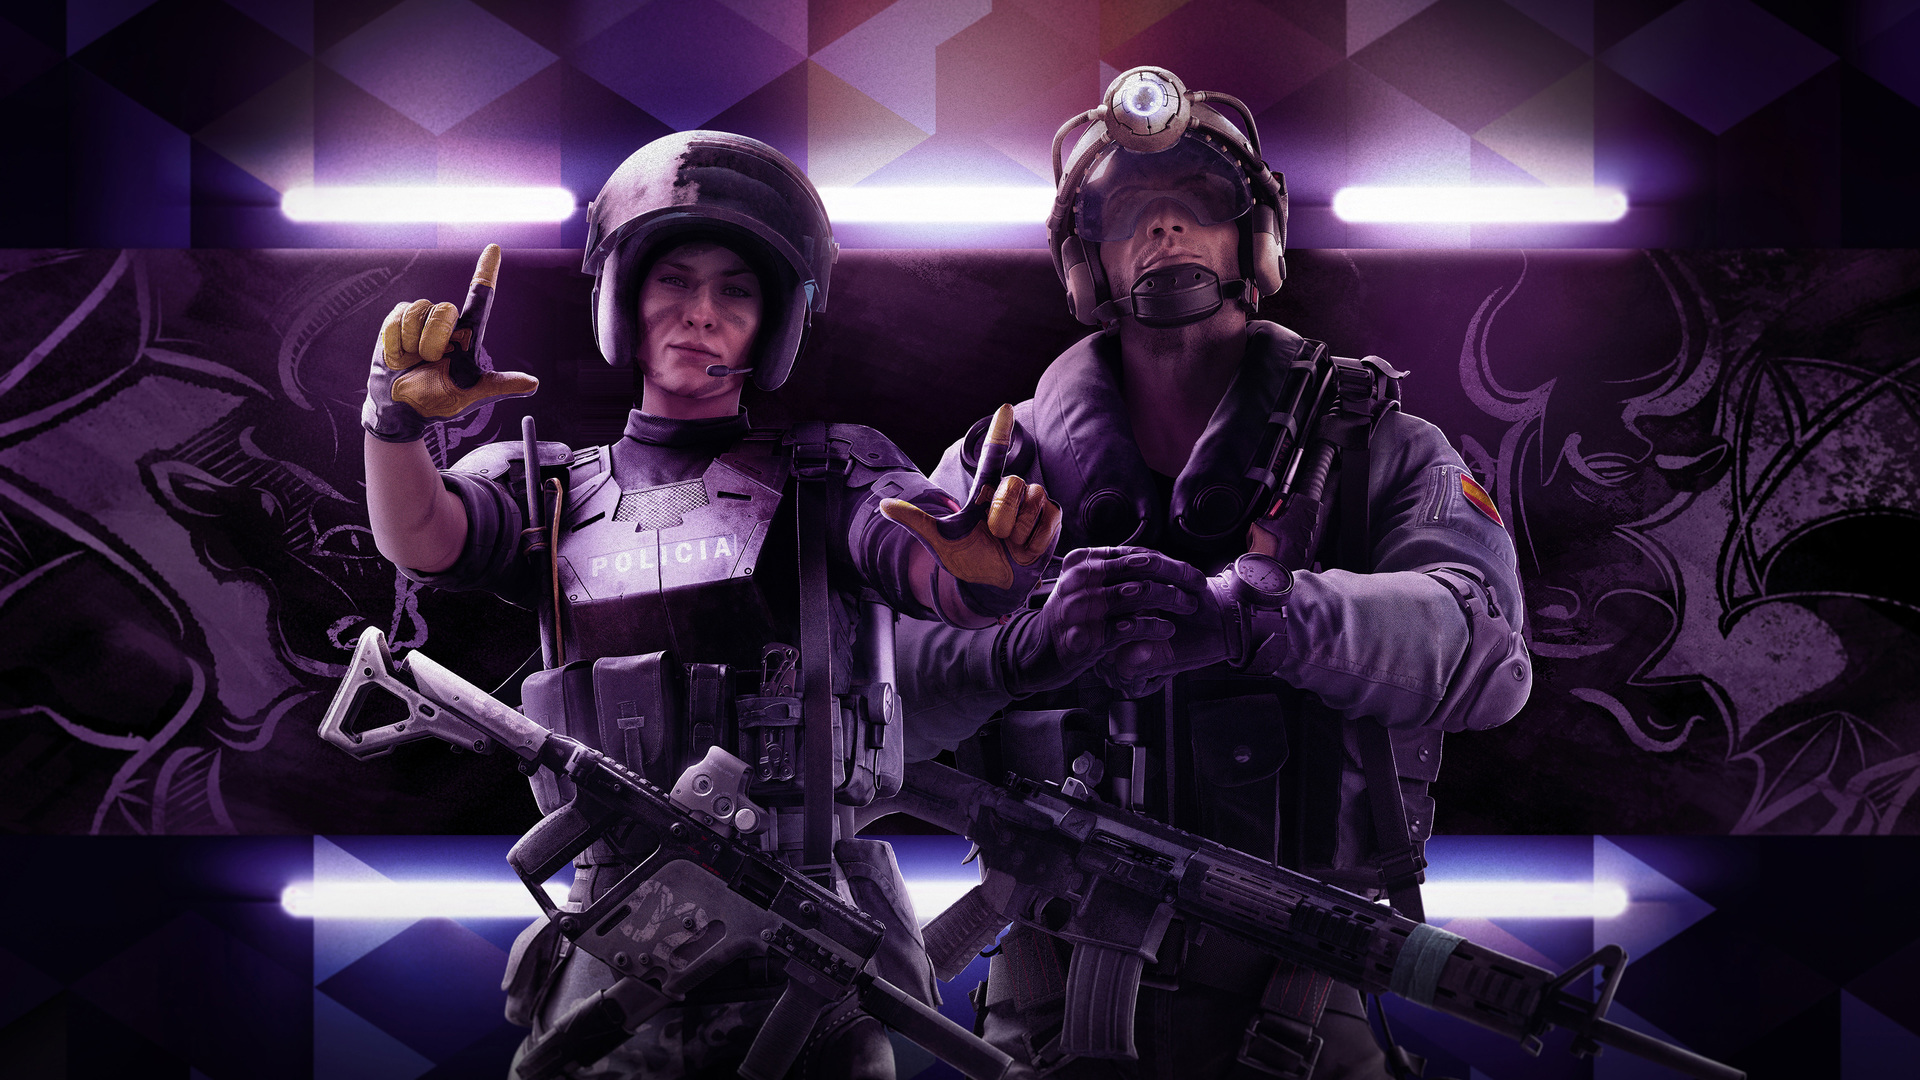 Steam Workshop Wallpaper Engine Rainbow Six Siege